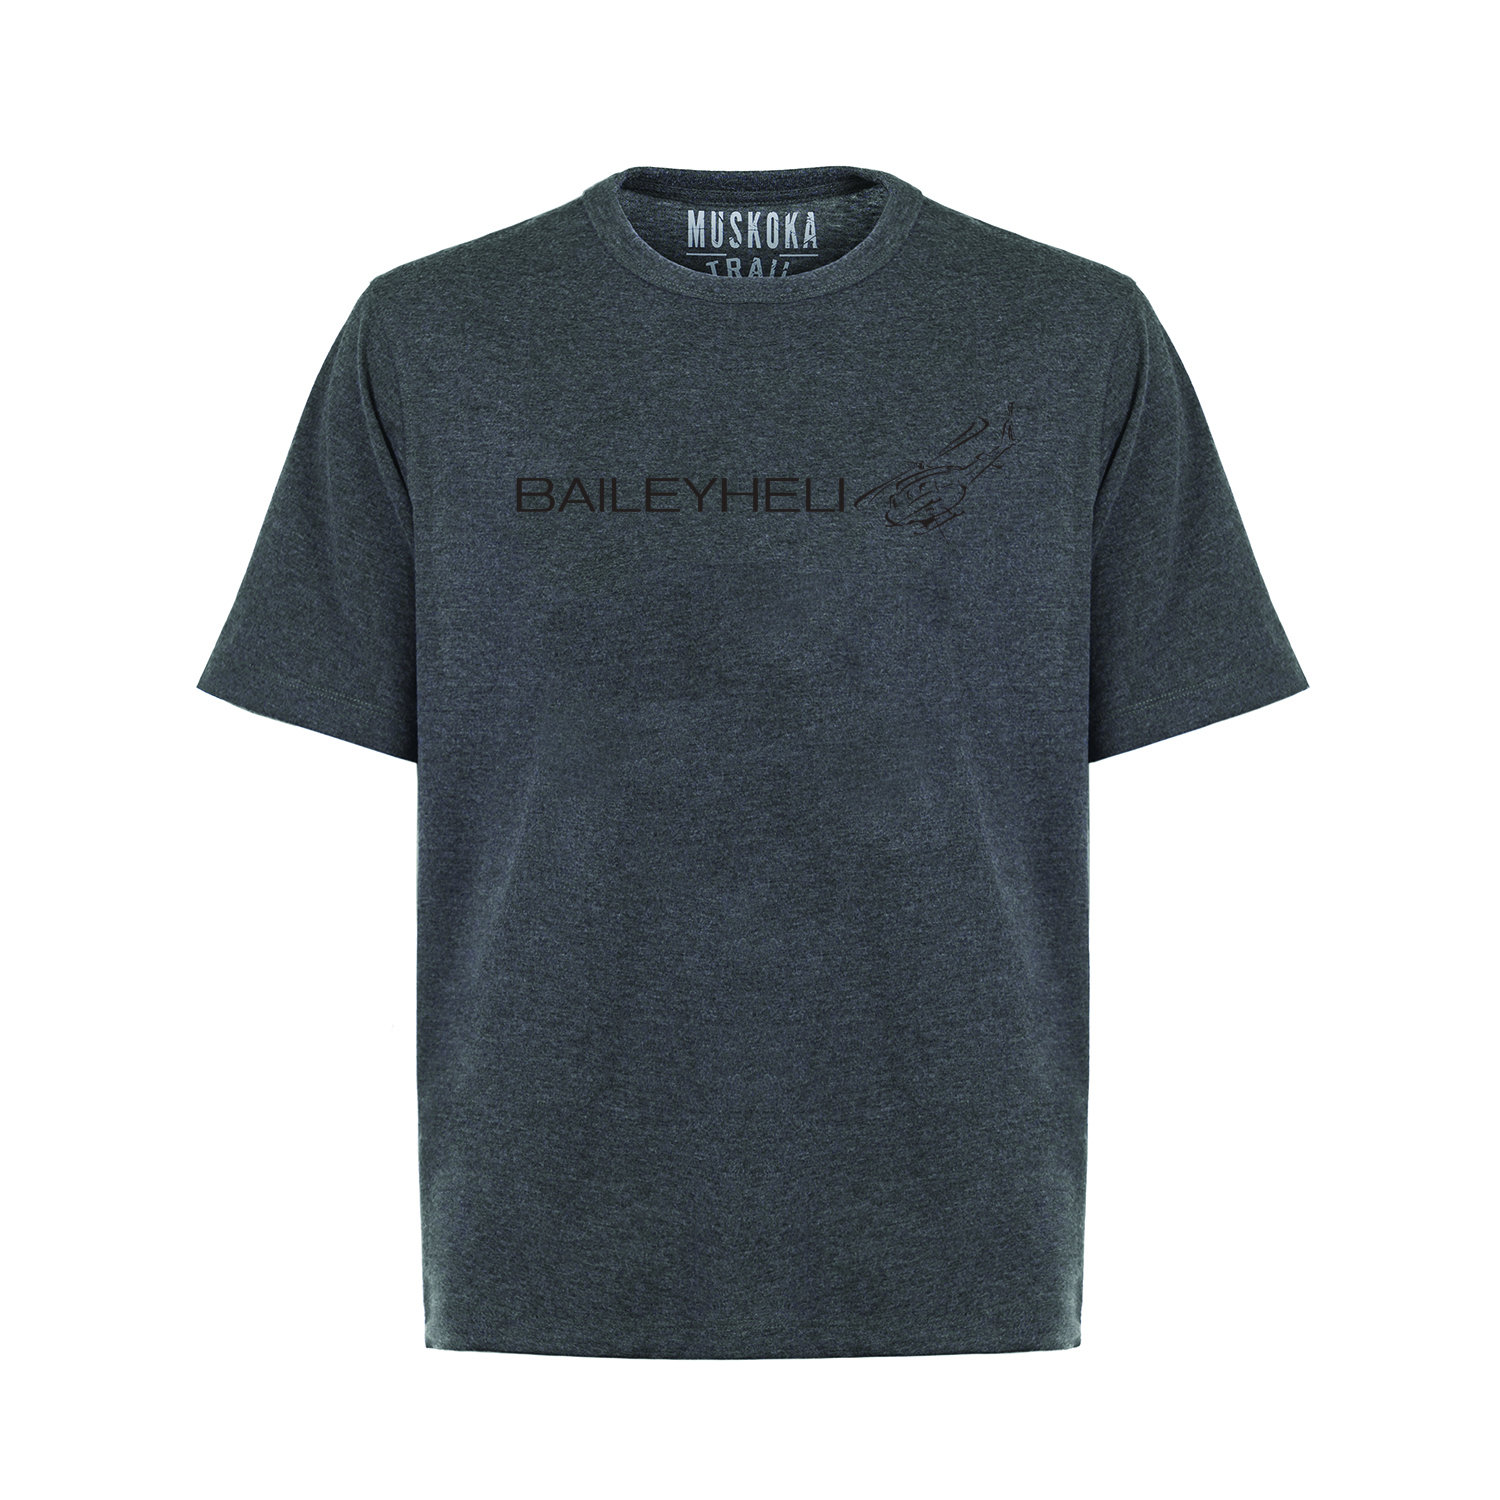 BAILEYHELI Liberty Crew Neck Tee - Mens Heathered Charcoal